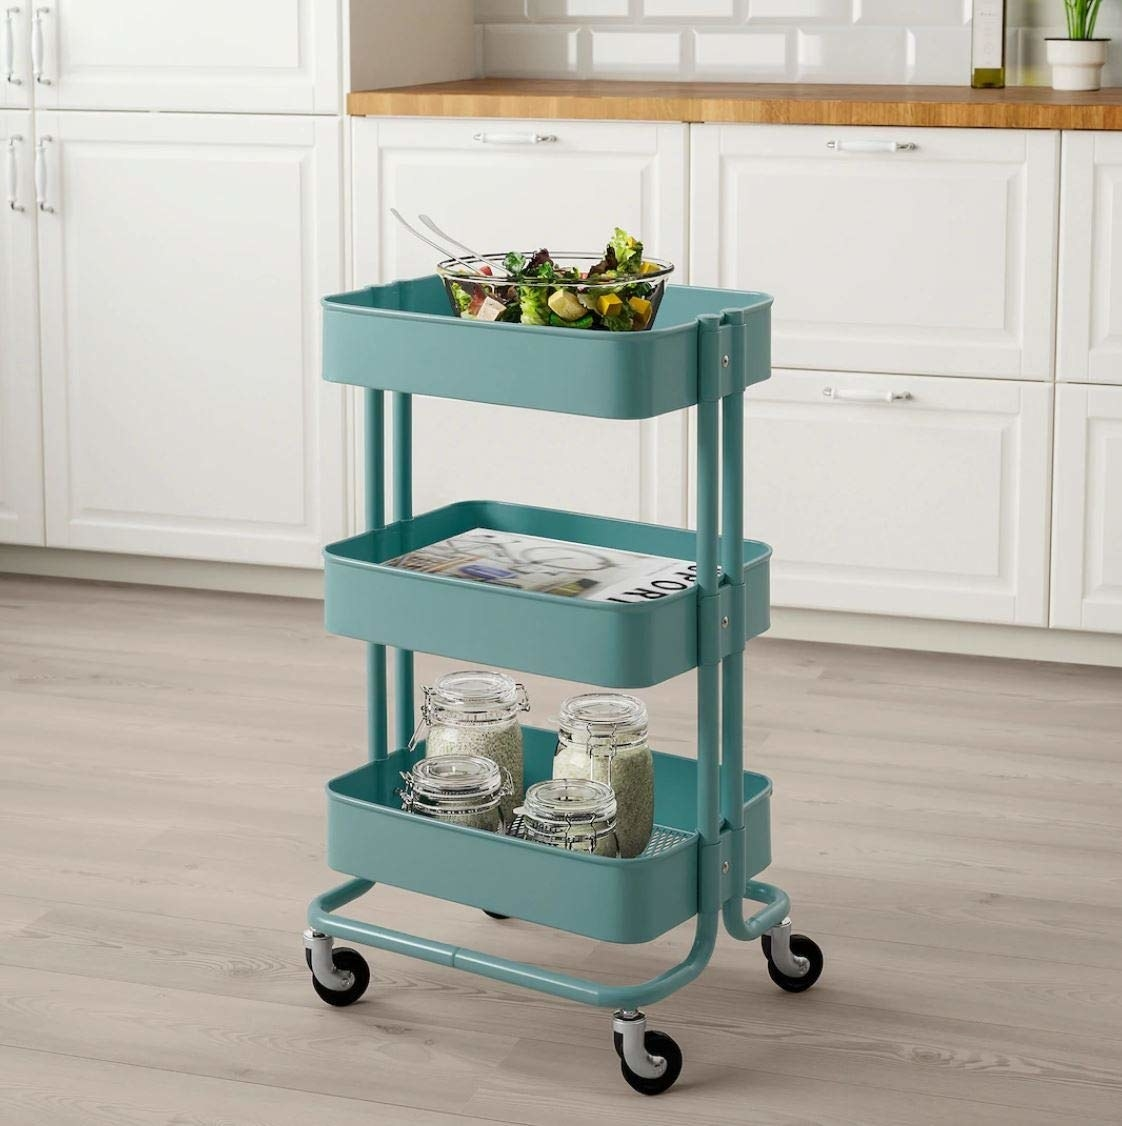 A blue Ikea utility cart with jars on it